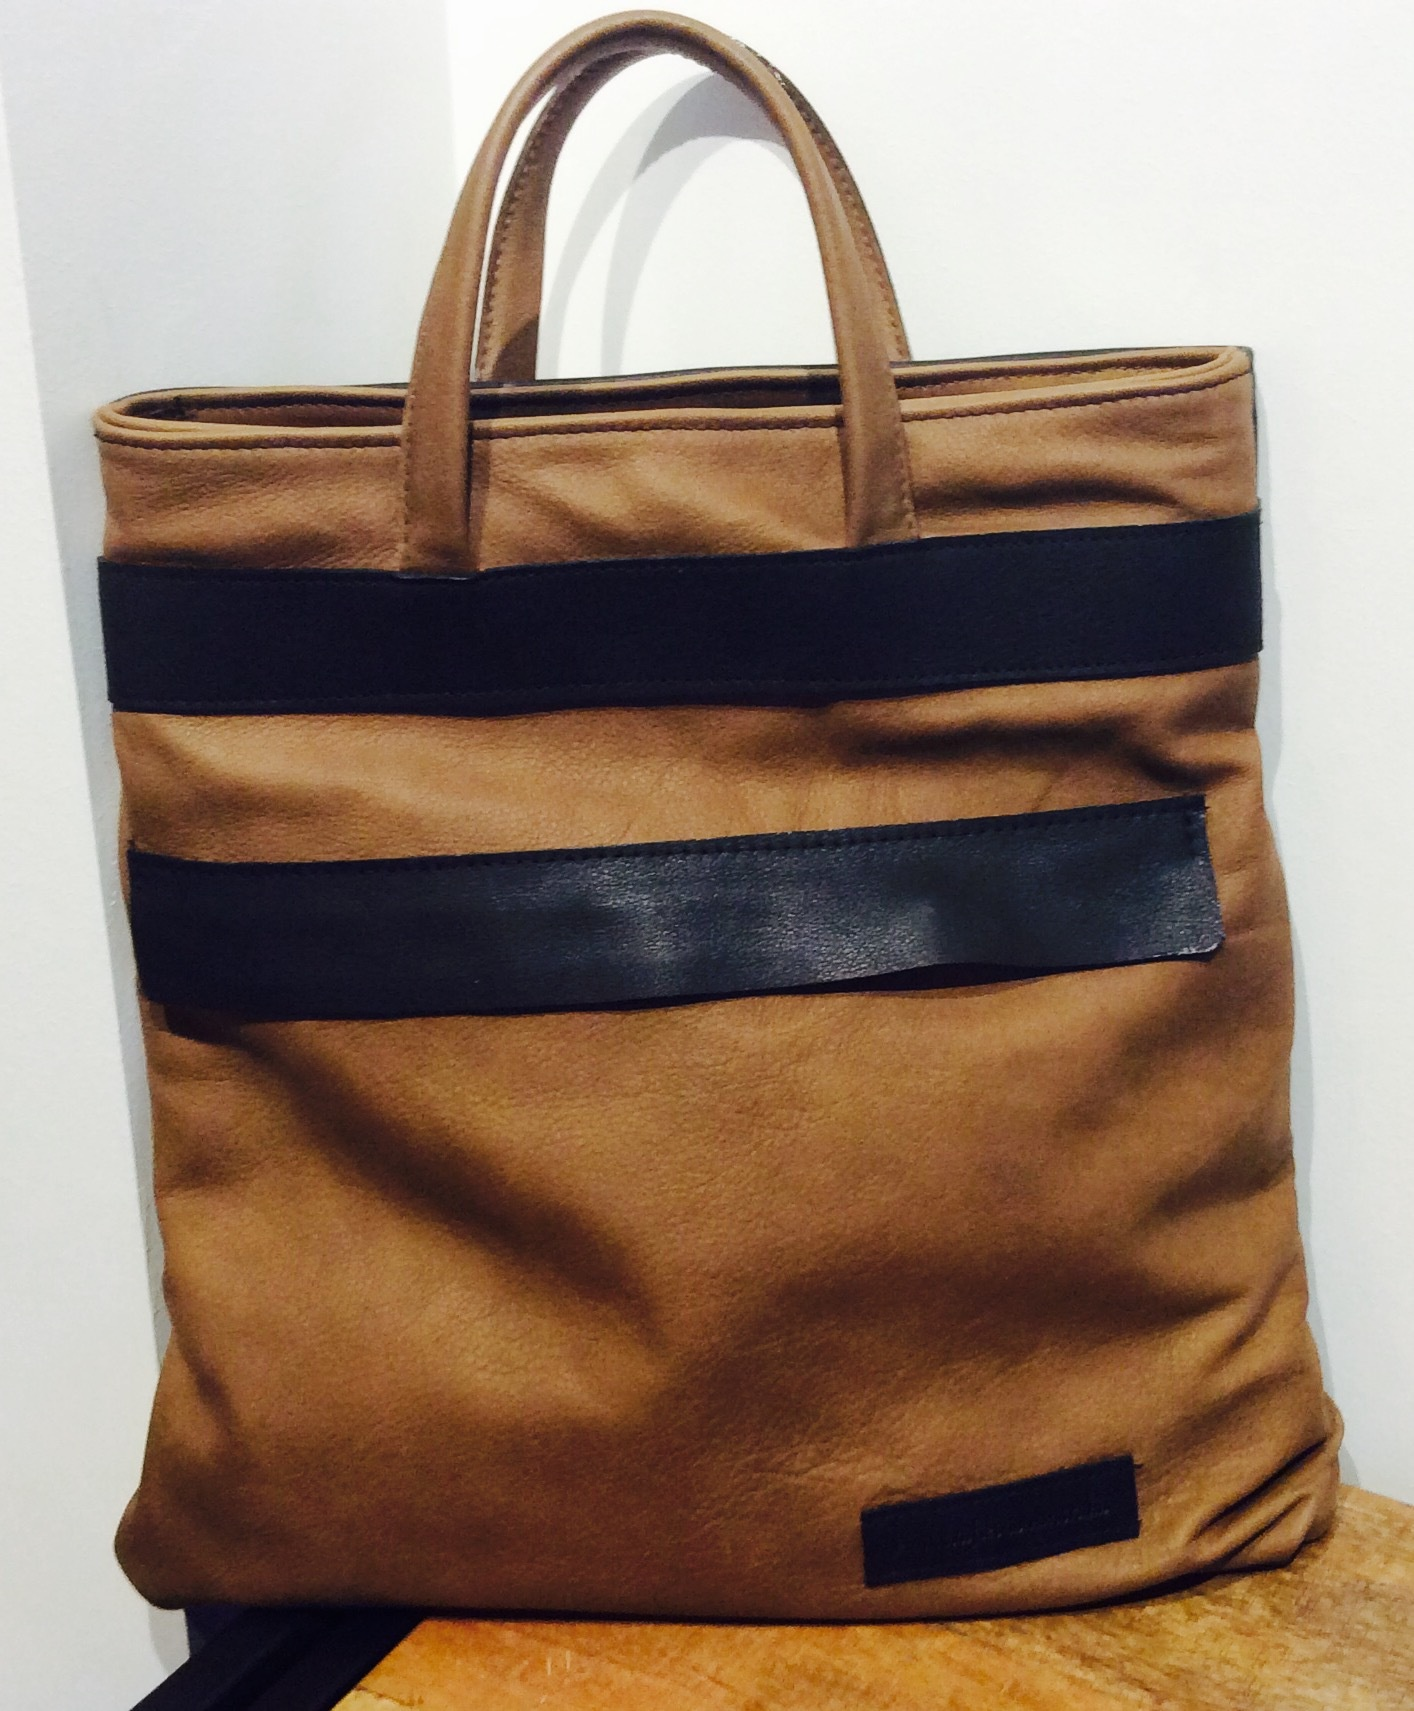 Taupe and Black Leather Urban Back Pack/Tote